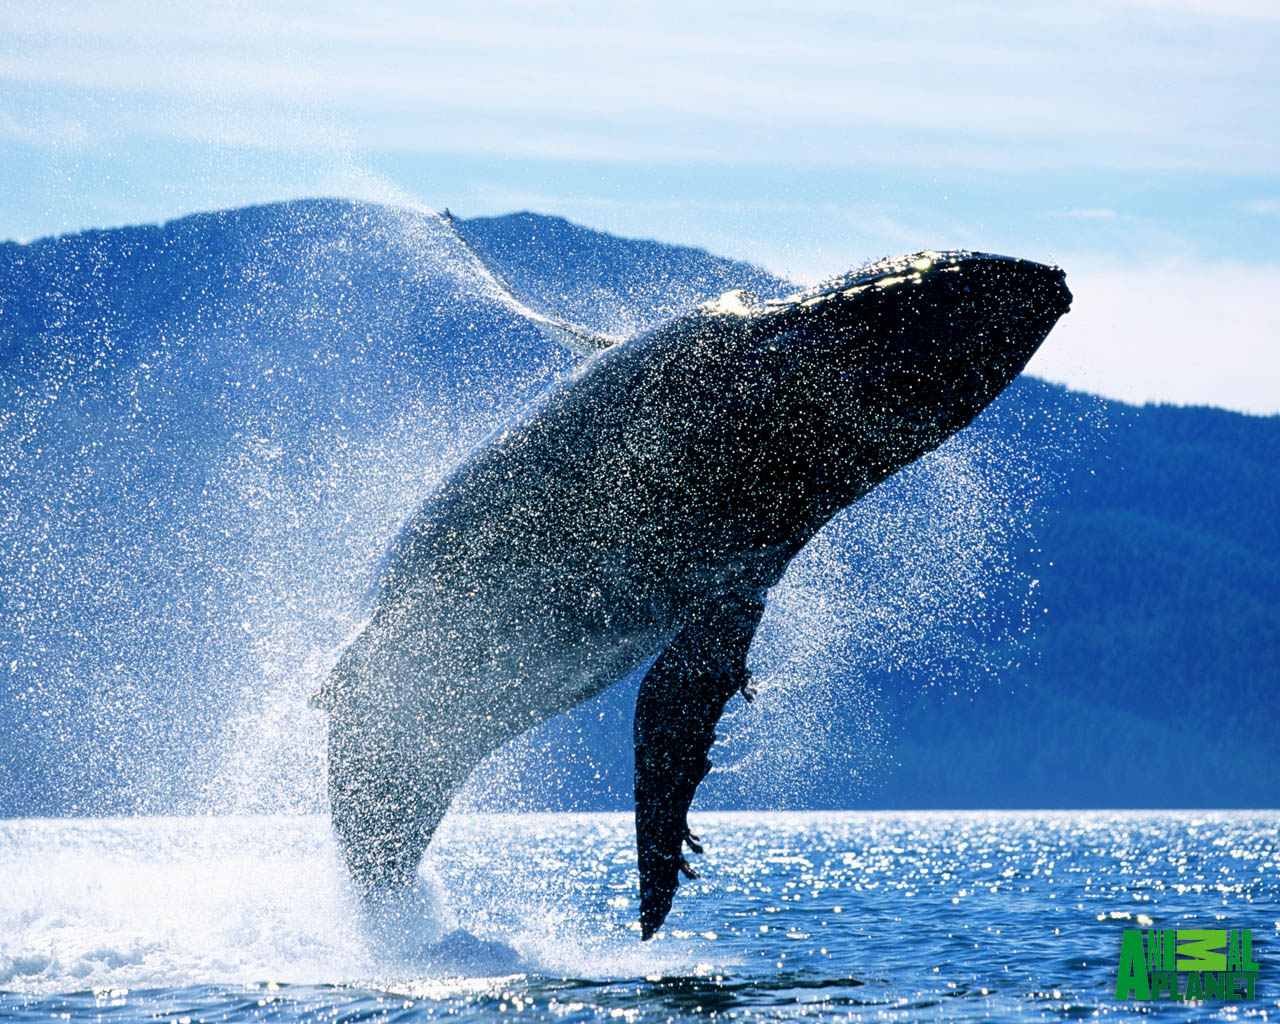 Whale wallpaper - photo#4